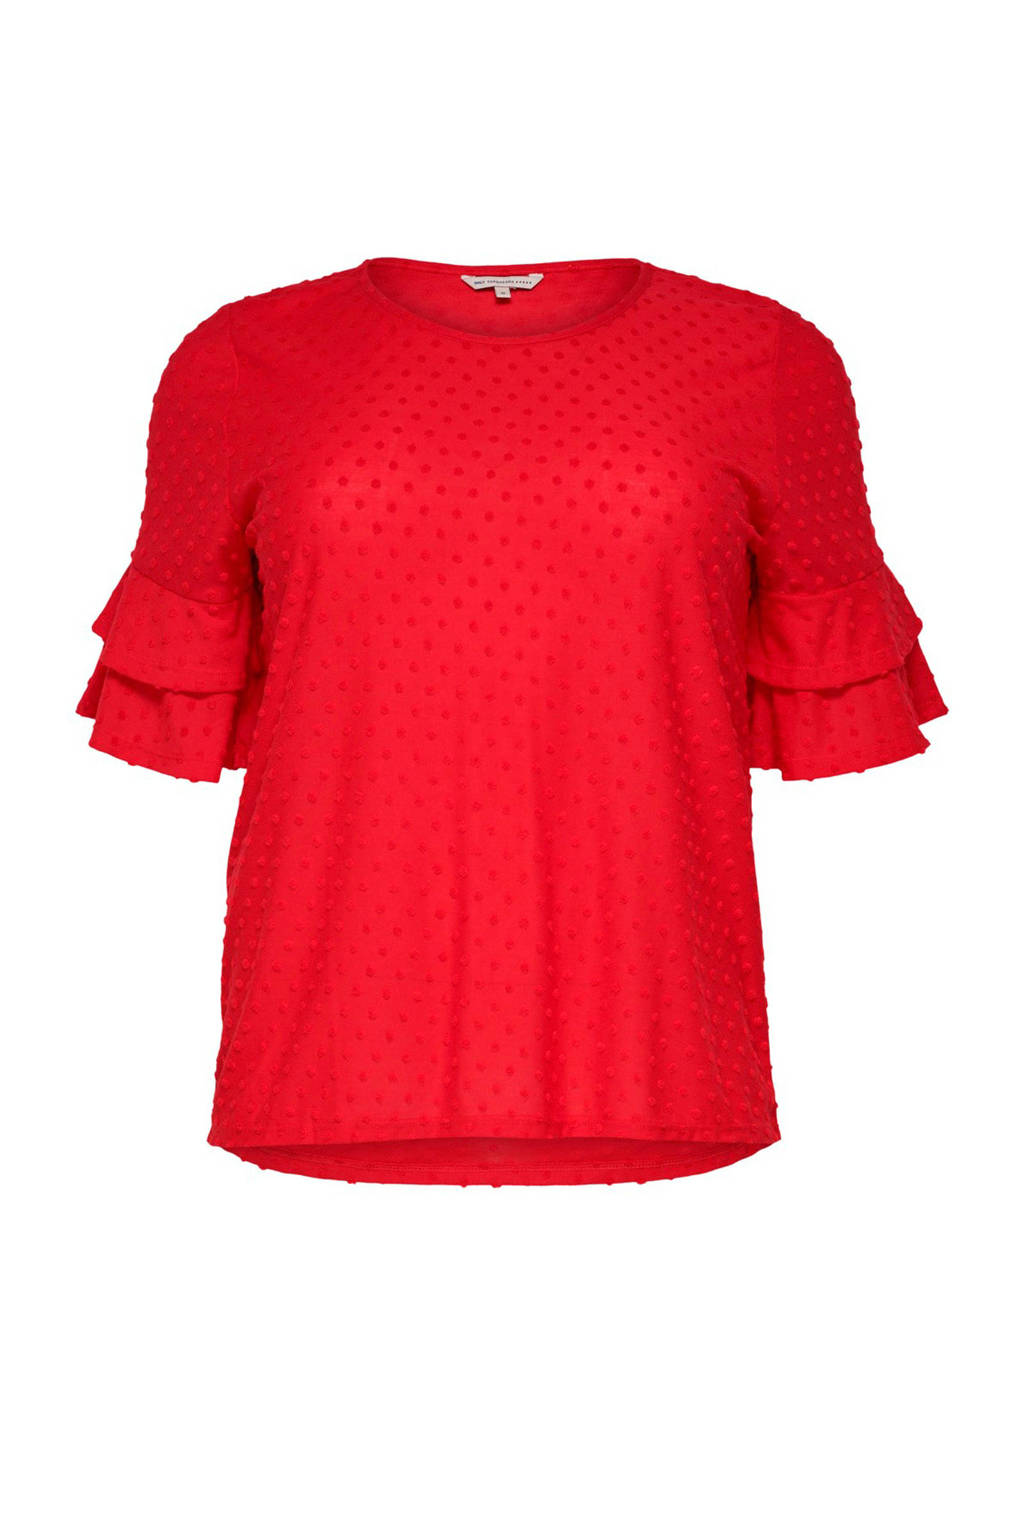 ONLY carmakoma top met volant rood, Rood